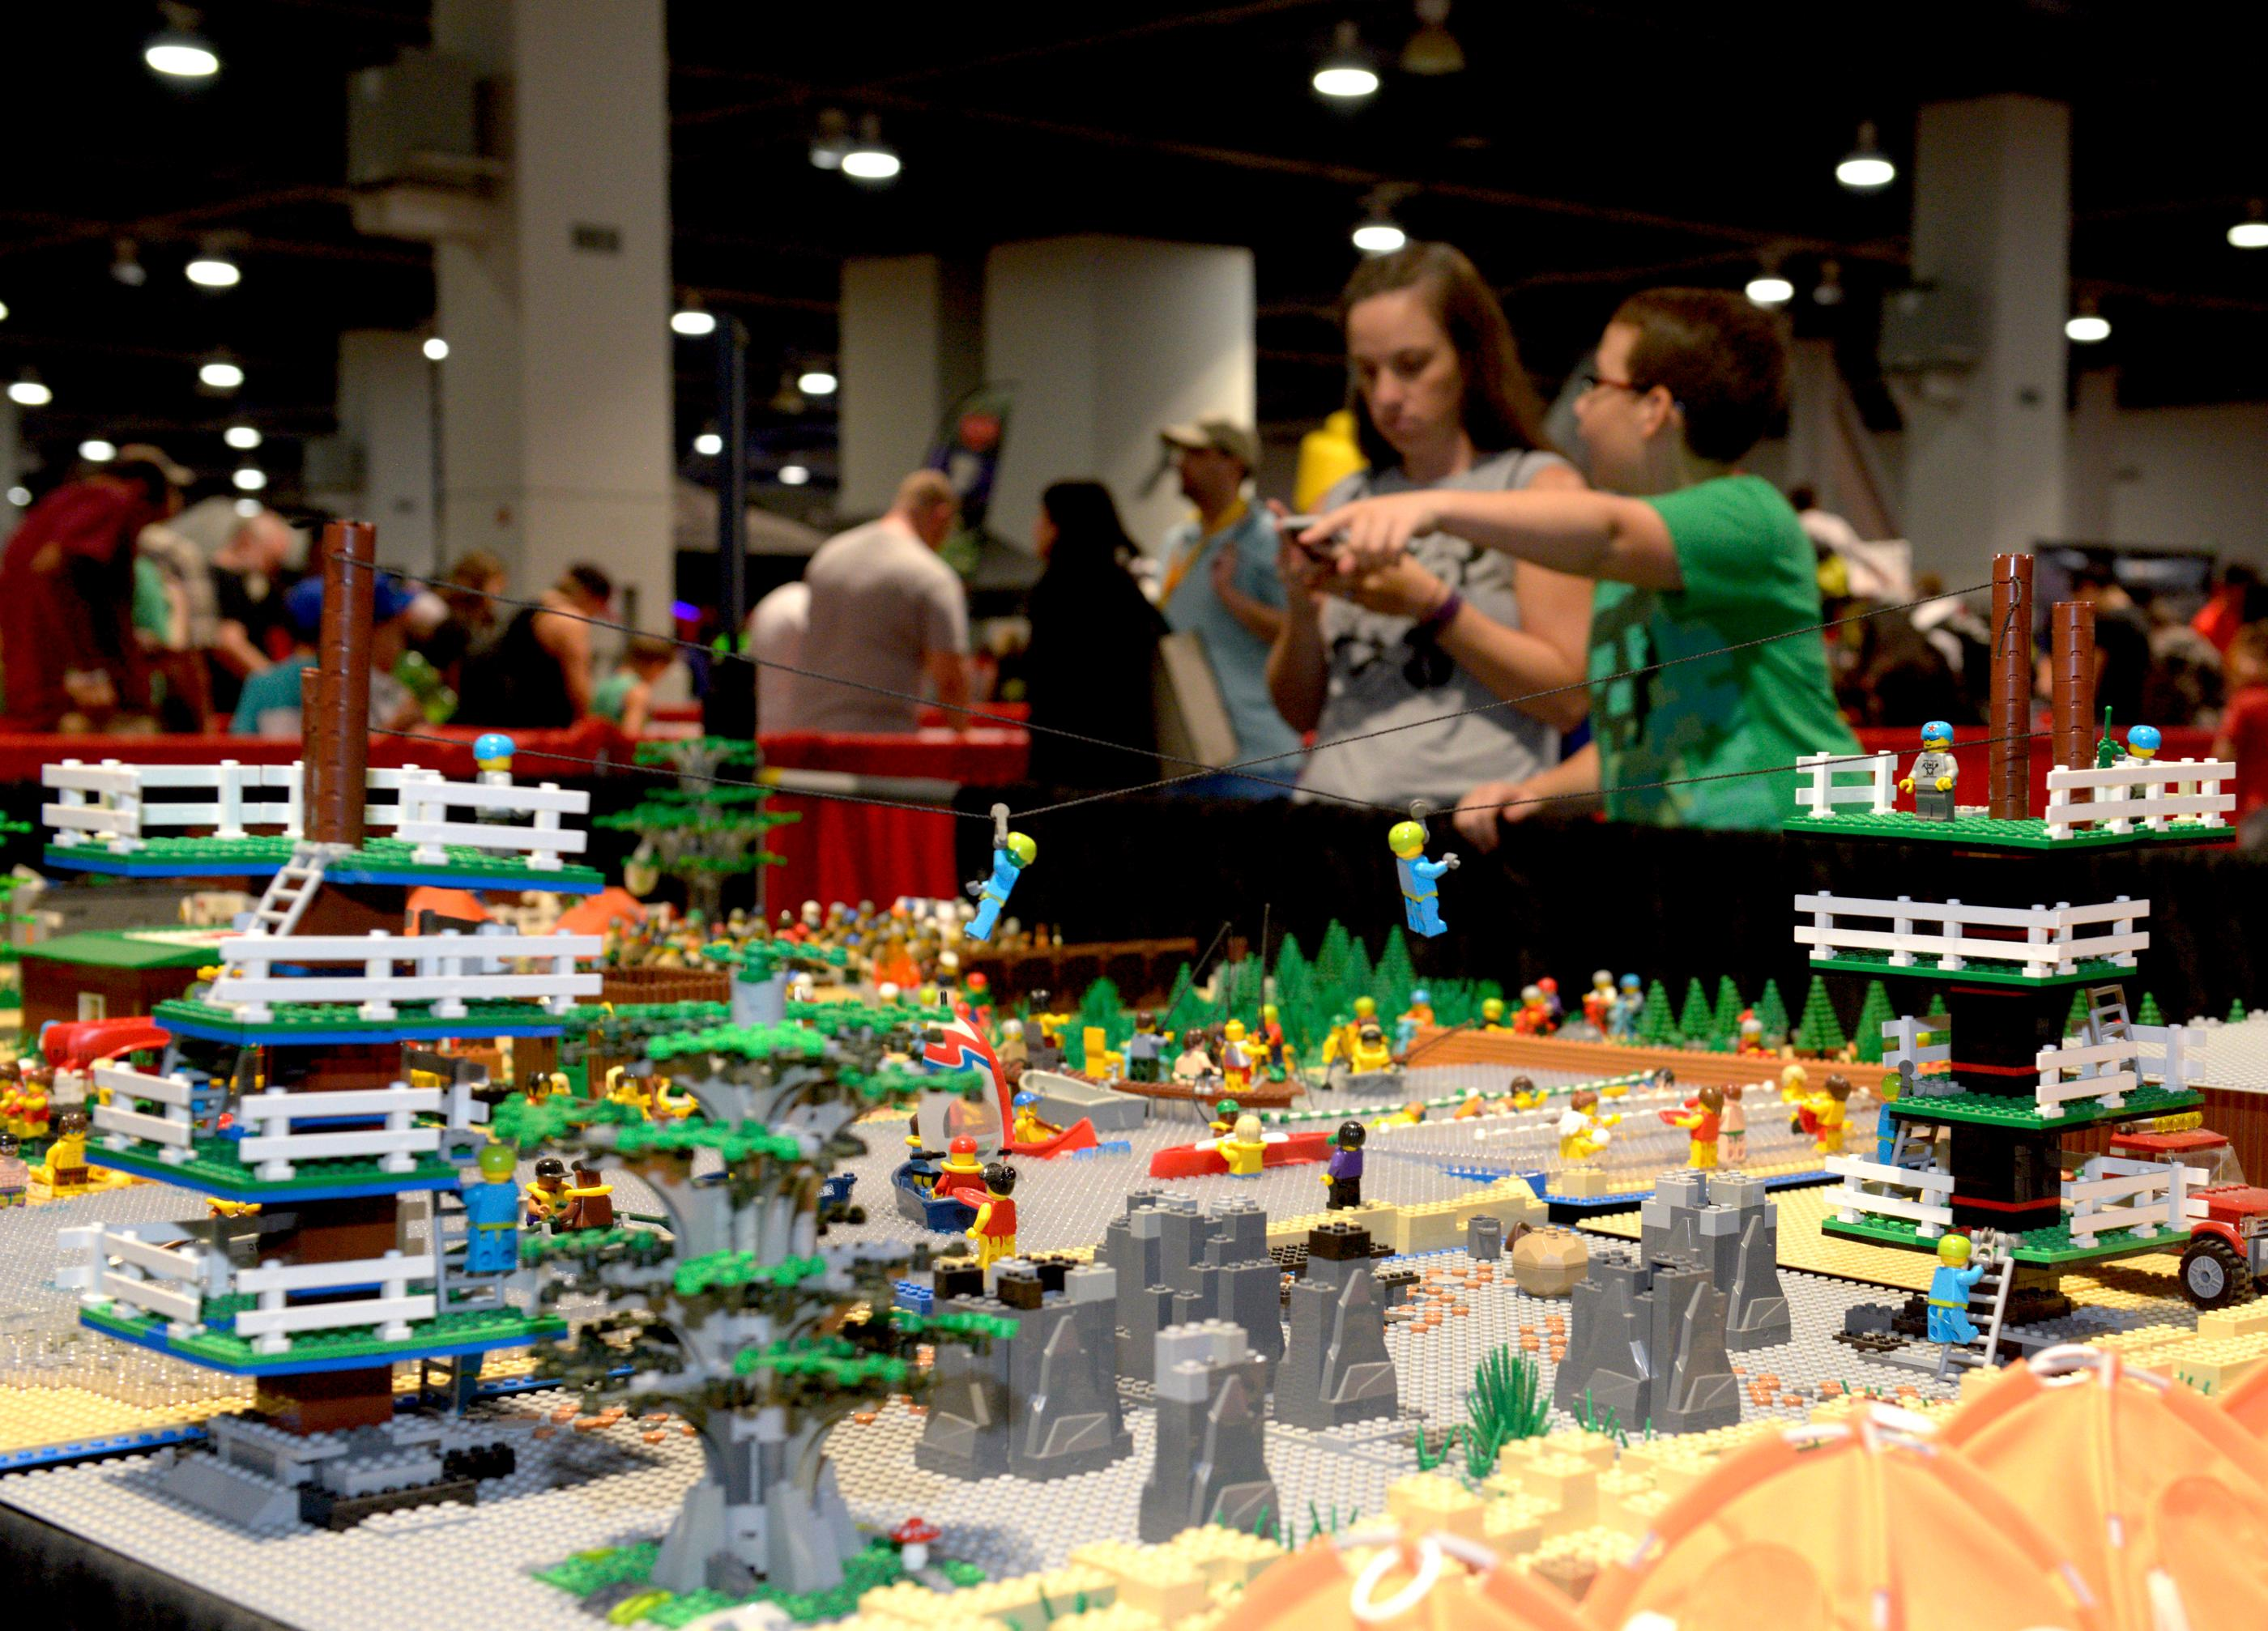 There is even a Lego zip-line on display at the Brick Fest Live Lego Fan Experience at the Las Vegas Convention Center, September 9, 2017. [Glenn Pinkerton/Las Vegas News Bureau]